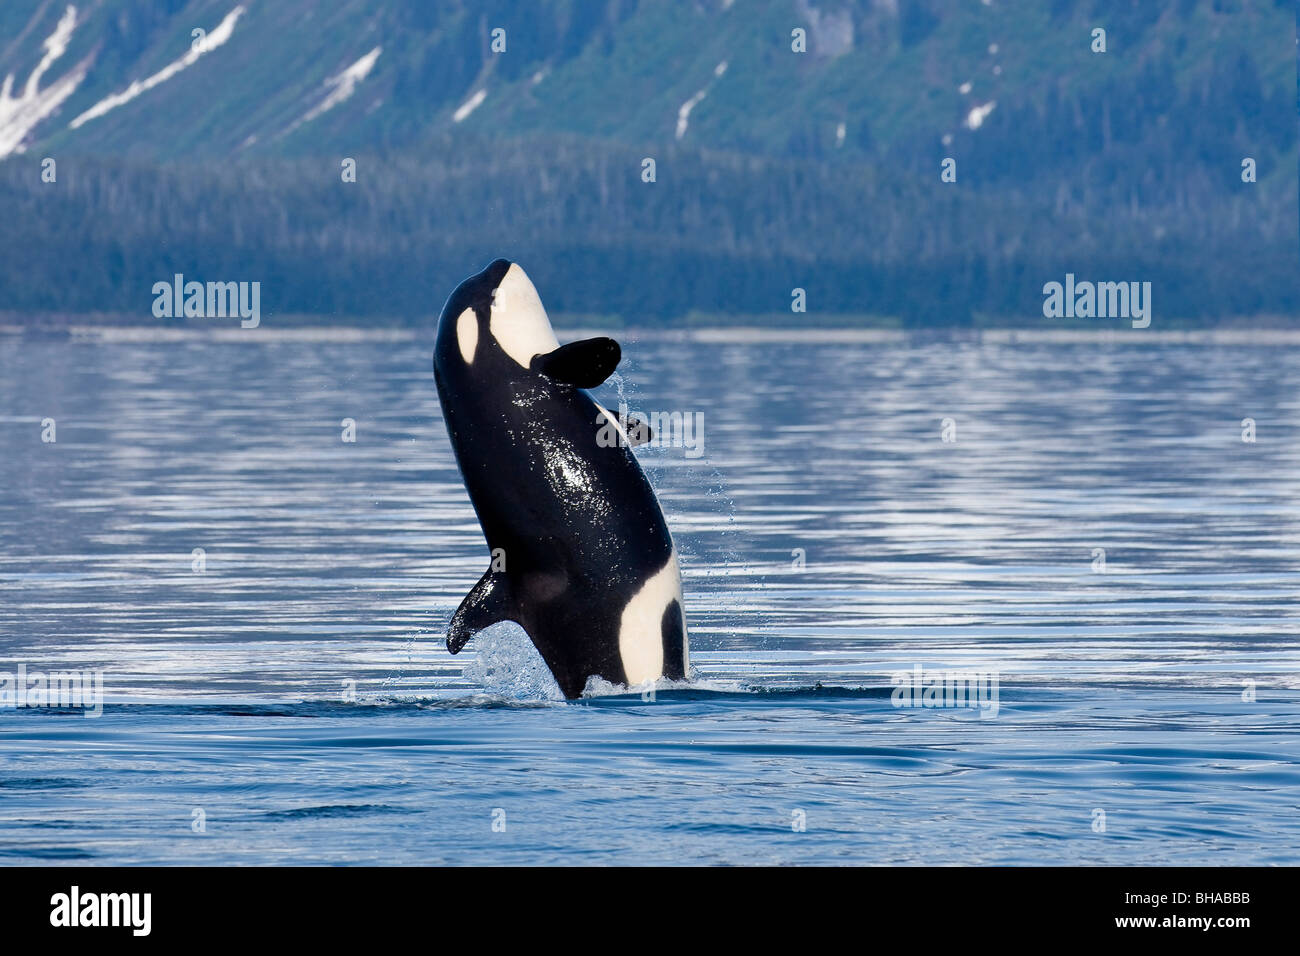 A young Killer Whale leaps from the calm waters of Lynn Canal in Alaska's Inside Passage. - Stock Image